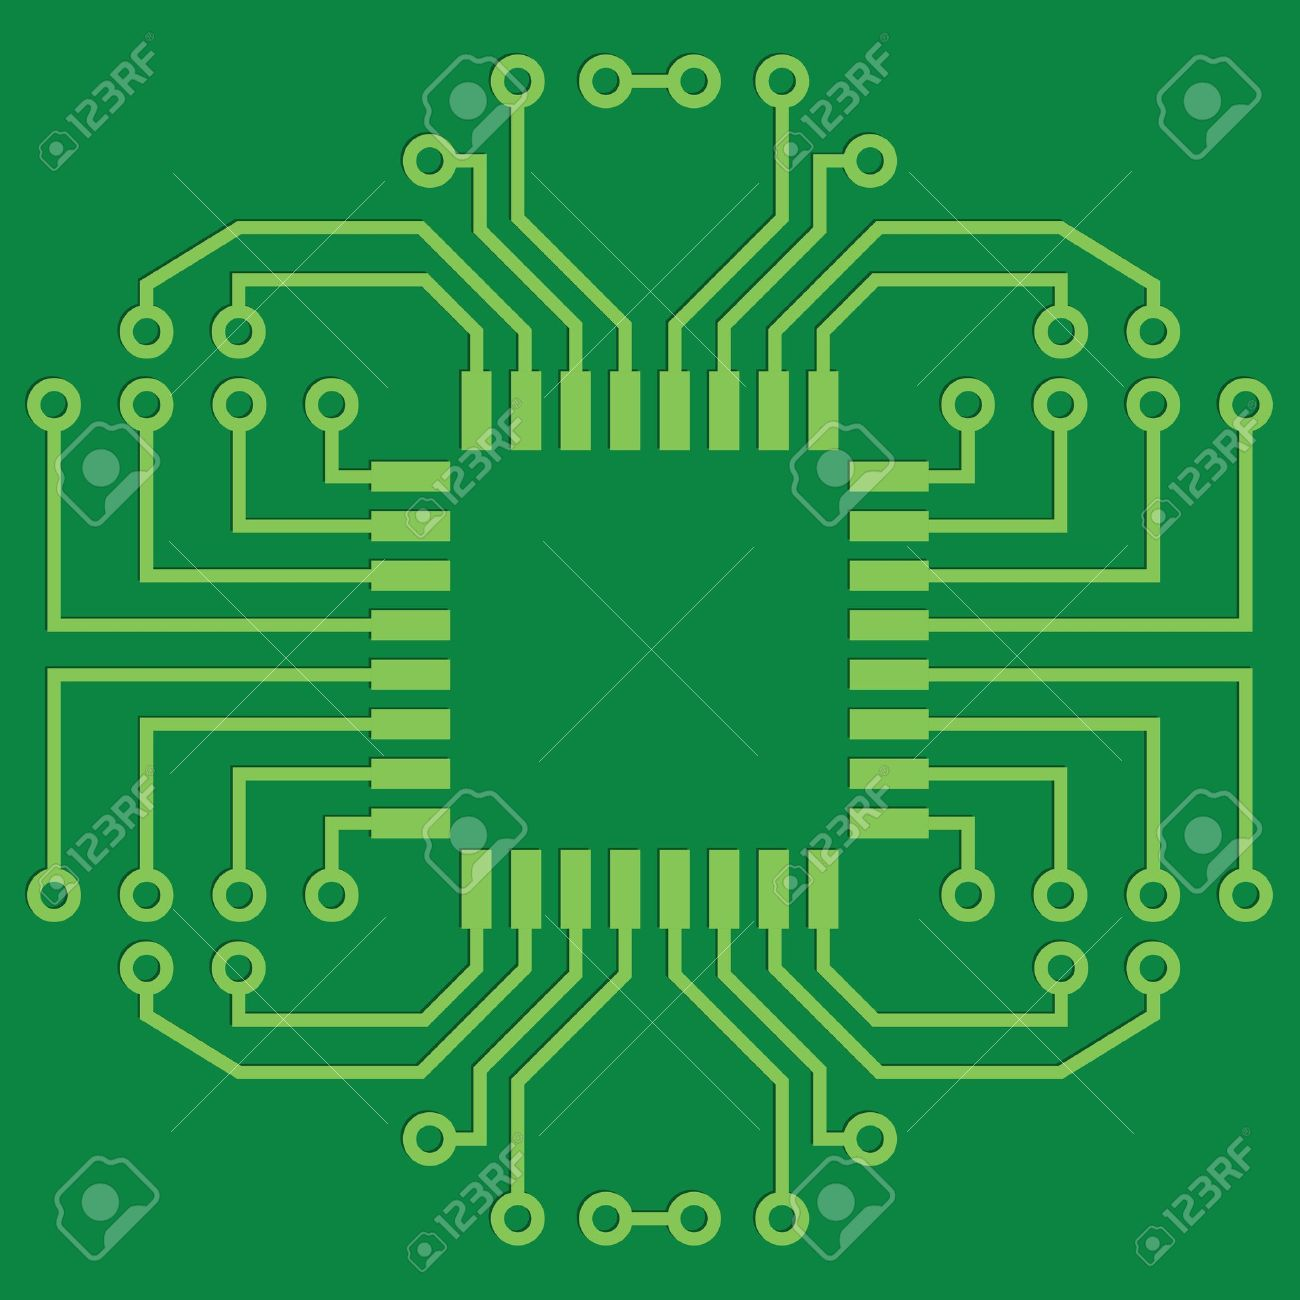 Screen Printed Circuits : Printed circuit board clipart clipground